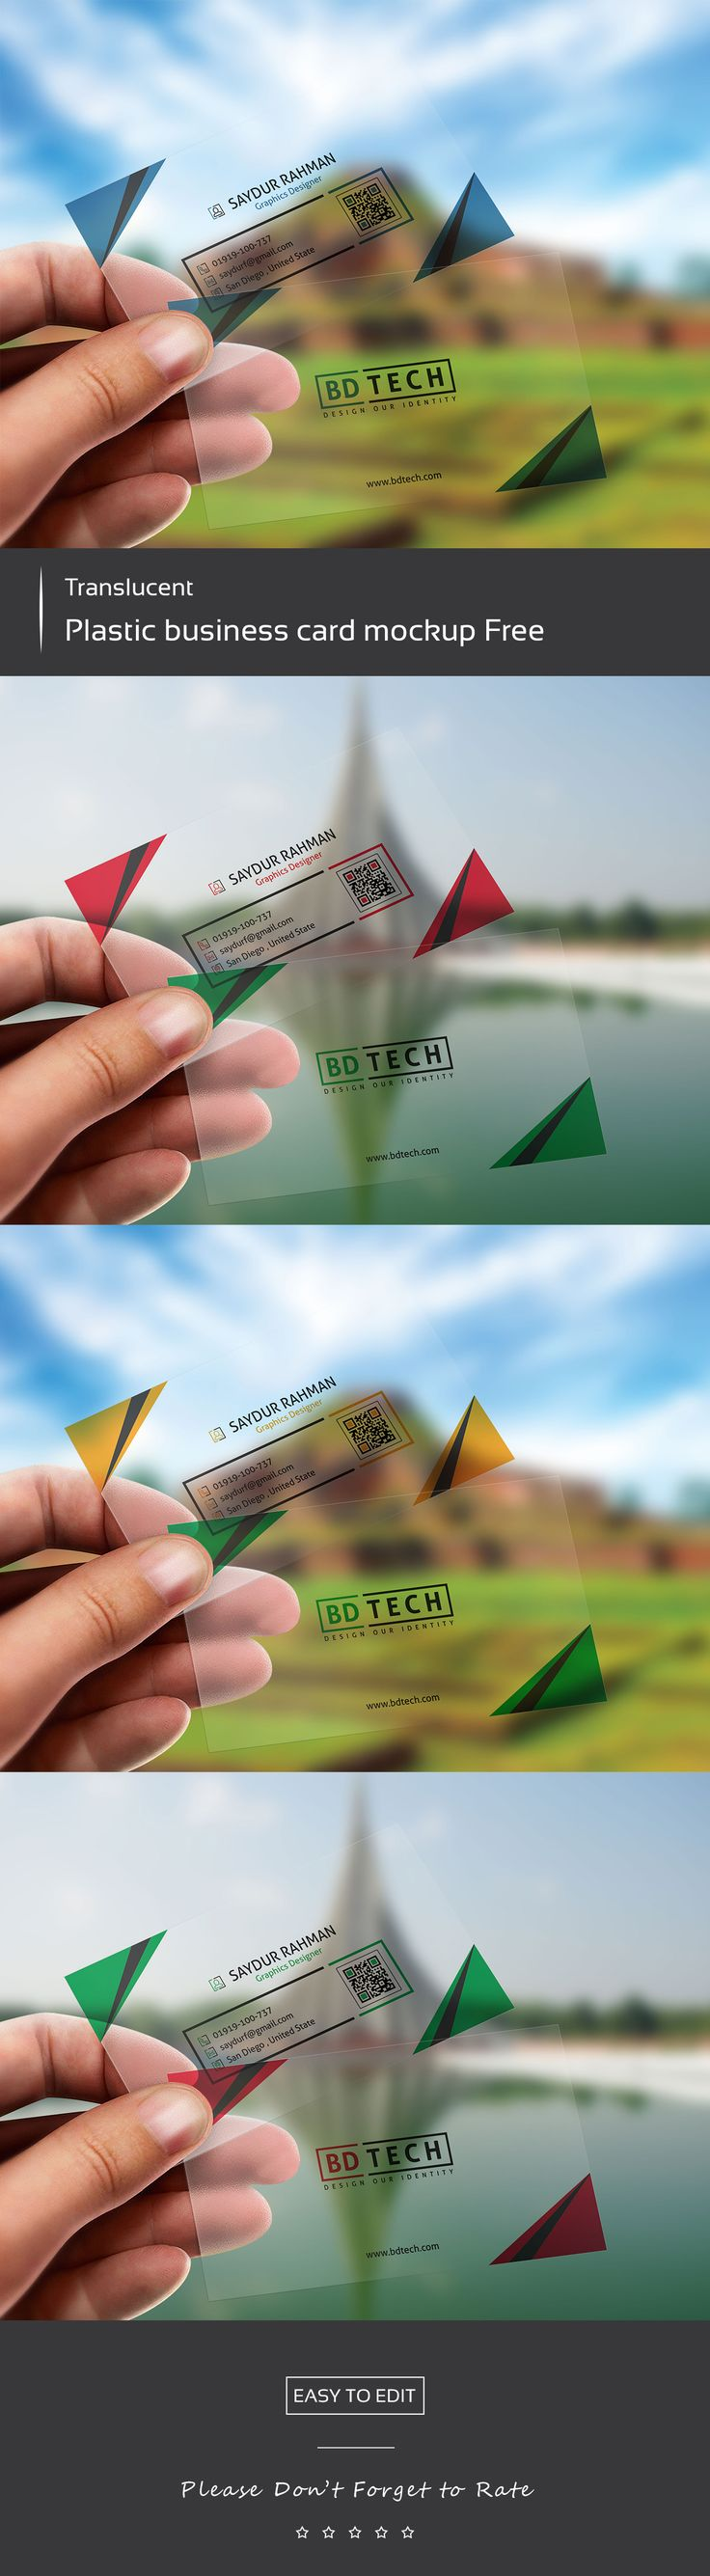 best 25 plastic business cards ideas on pinterest